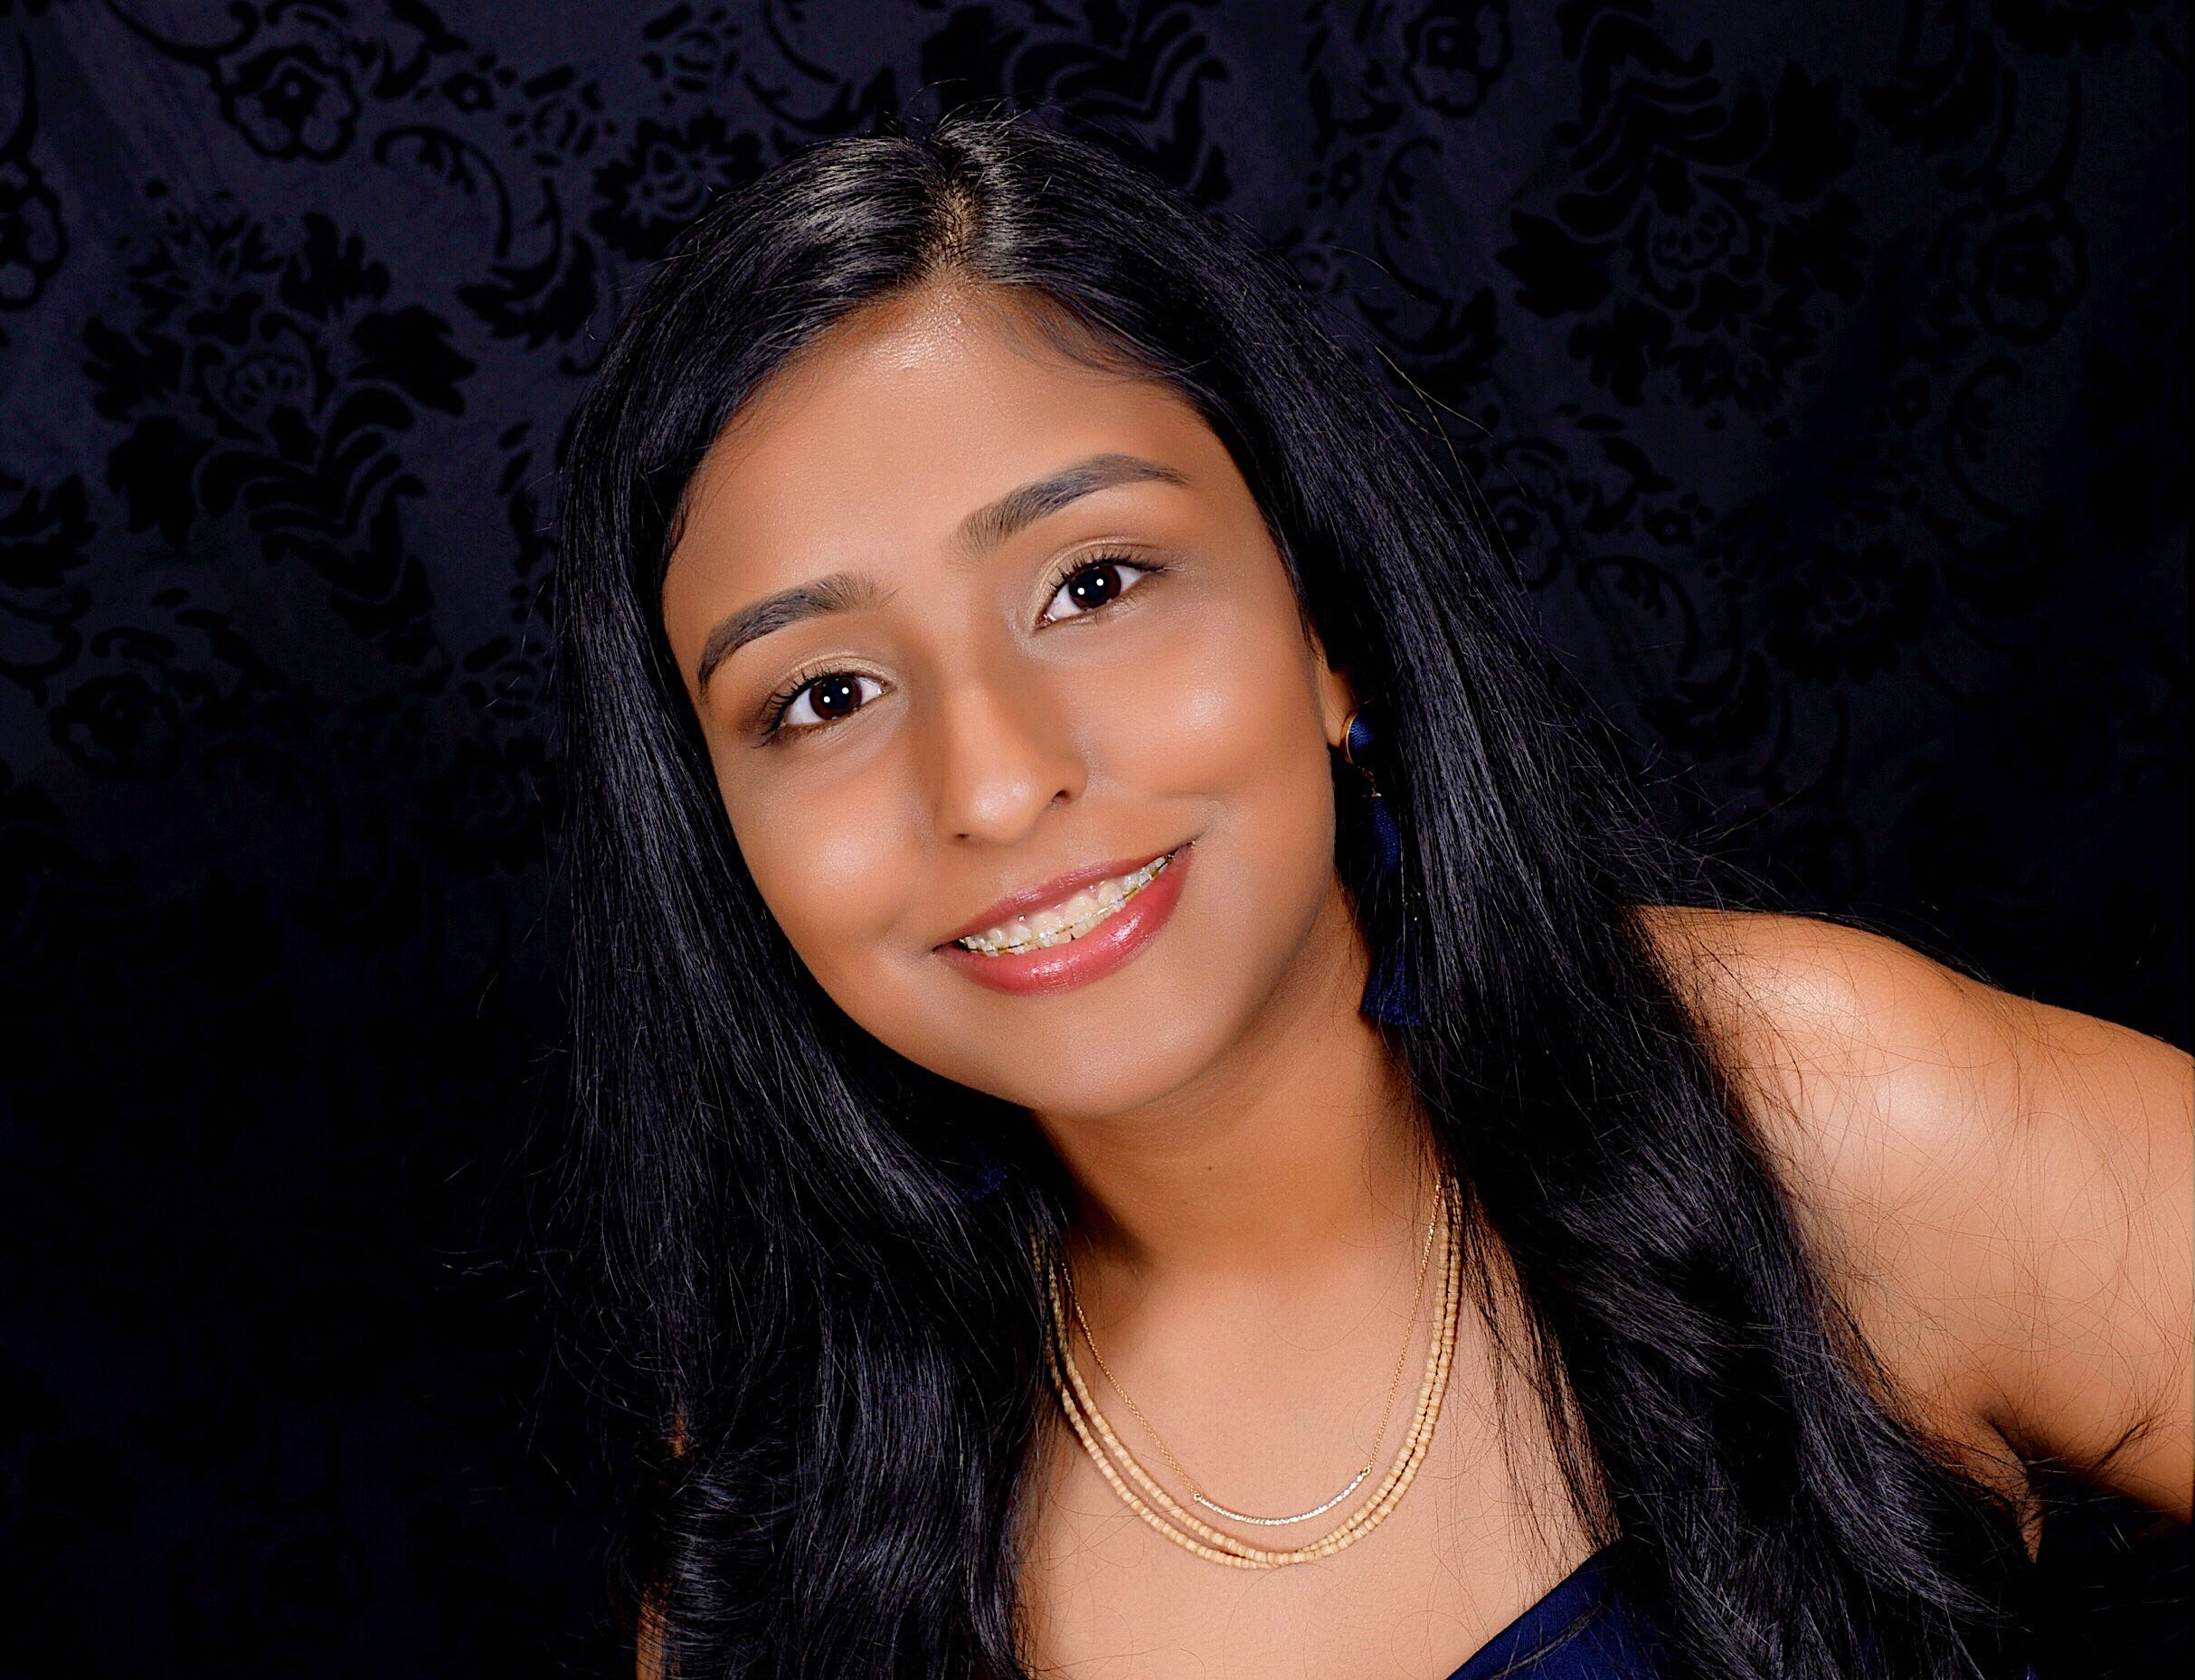 Dhenu Patel, one of Tallahassee's 2019 Five Young Women You Need to Know.